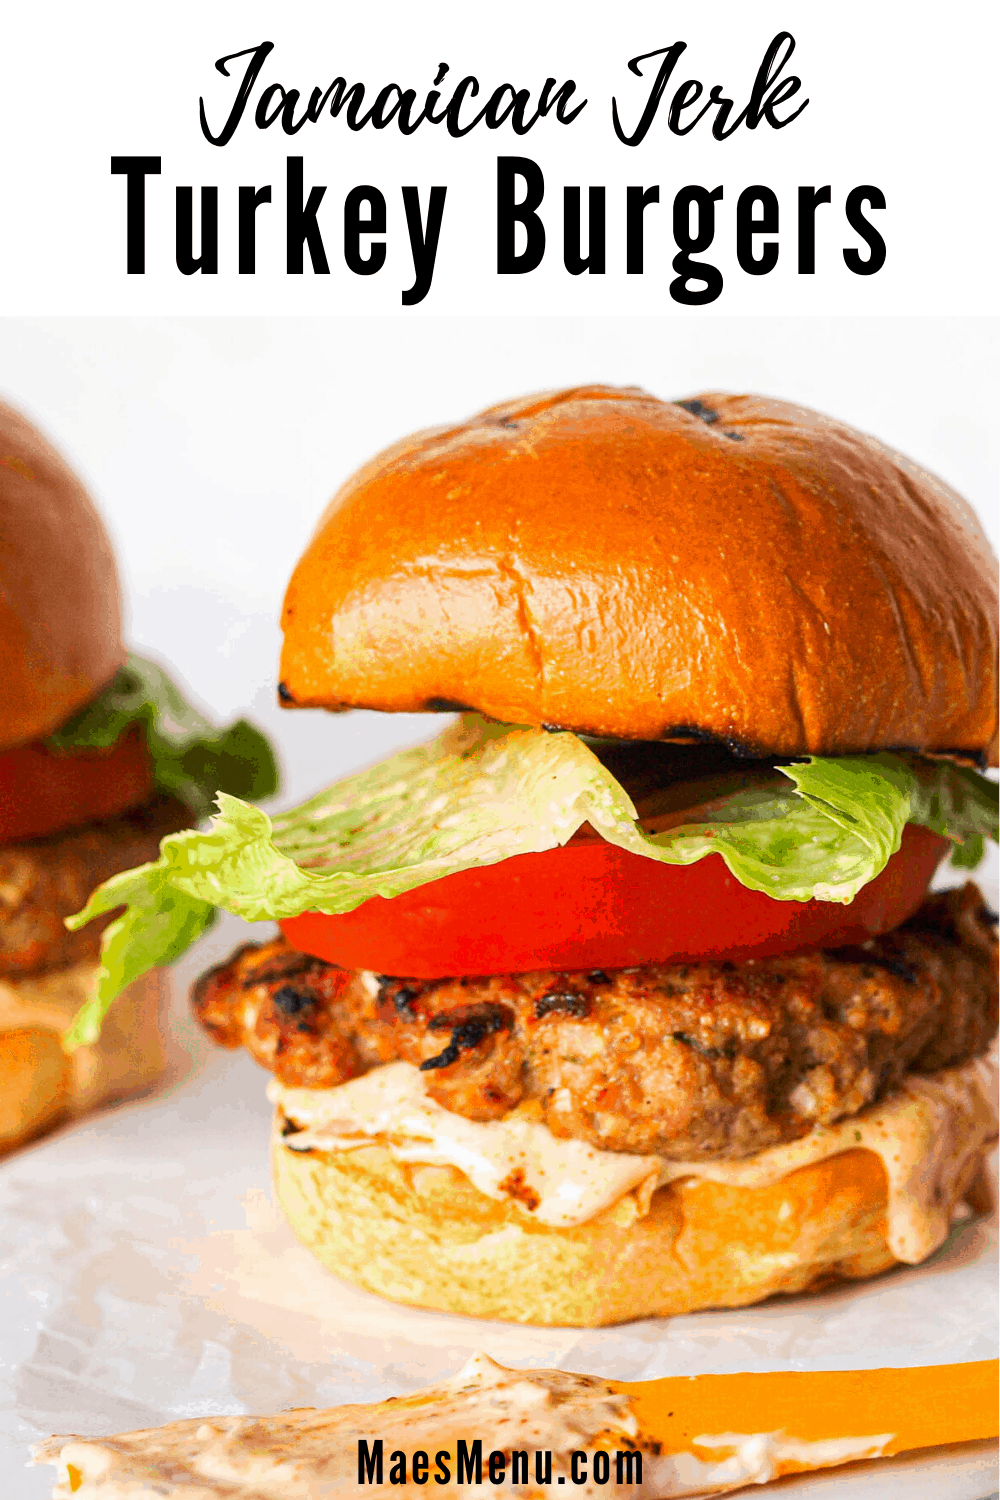 A pinterest pin for Jamaican Jerk Turkey Burgers with an up-close picture of a turkey burger with a spatula in the foreground.